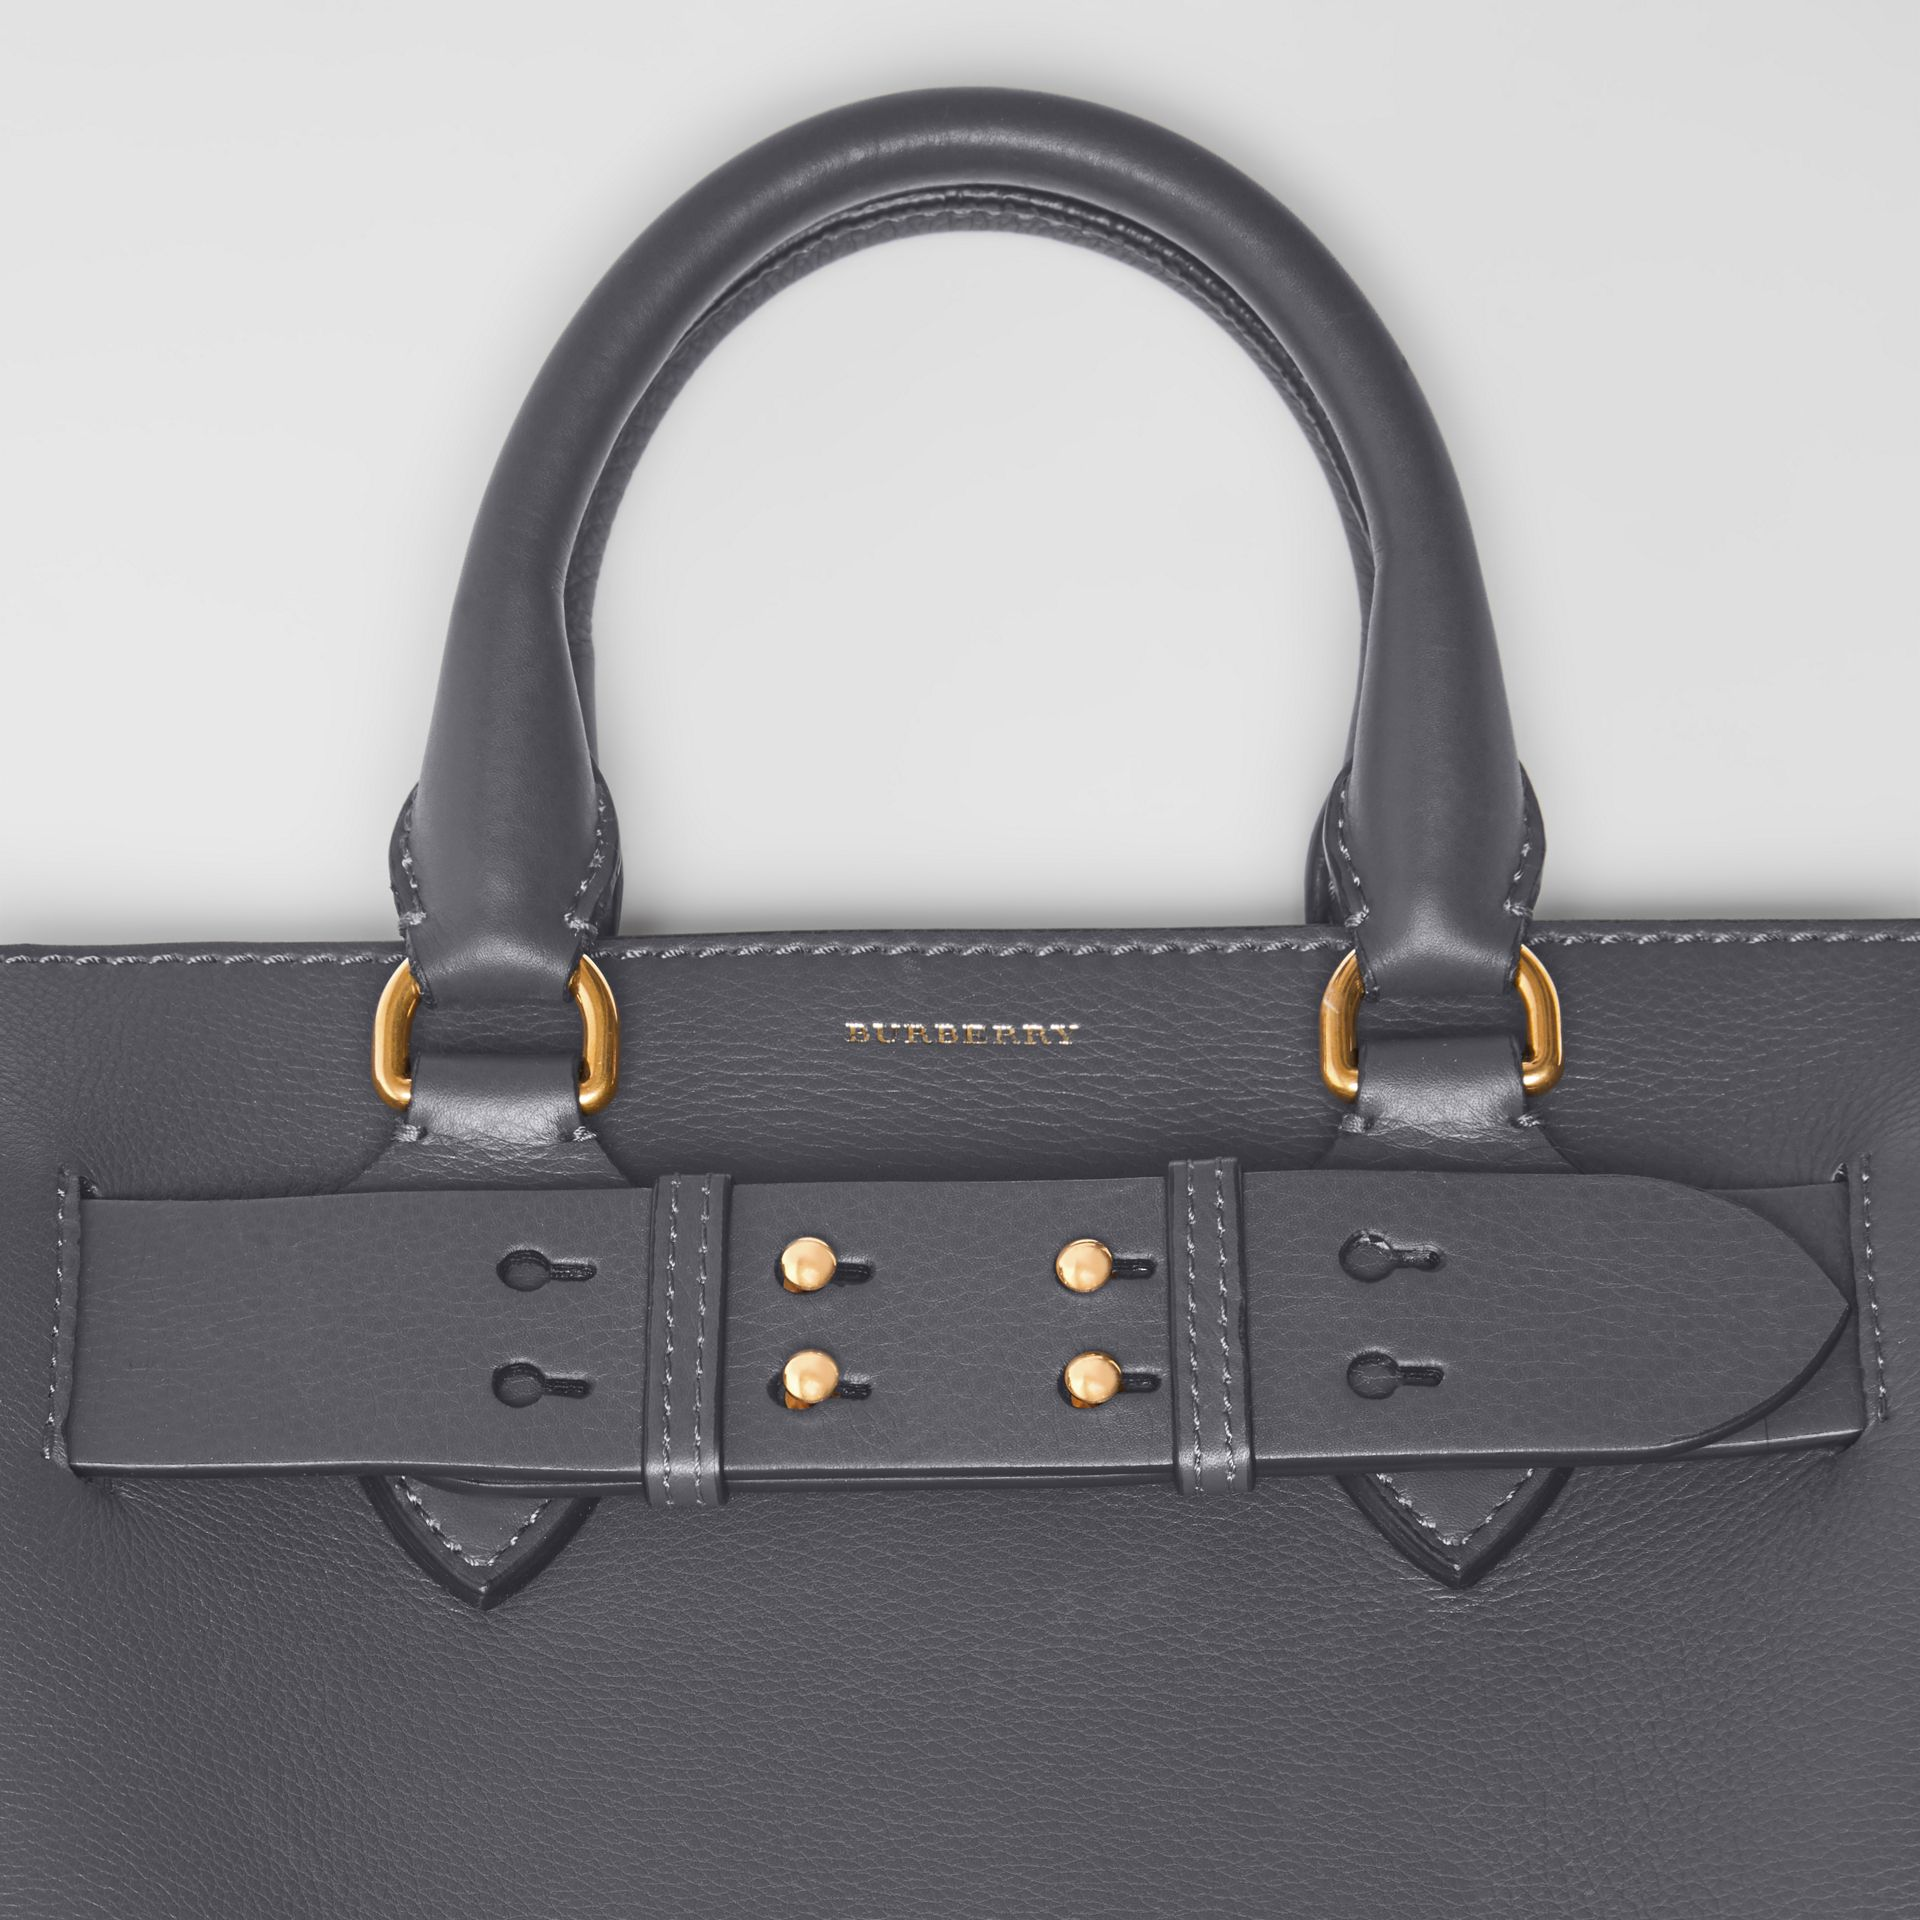 Petit sac The Belt en cuir (Gris Anthracite) - Femme | Burberry - photo de la galerie 1